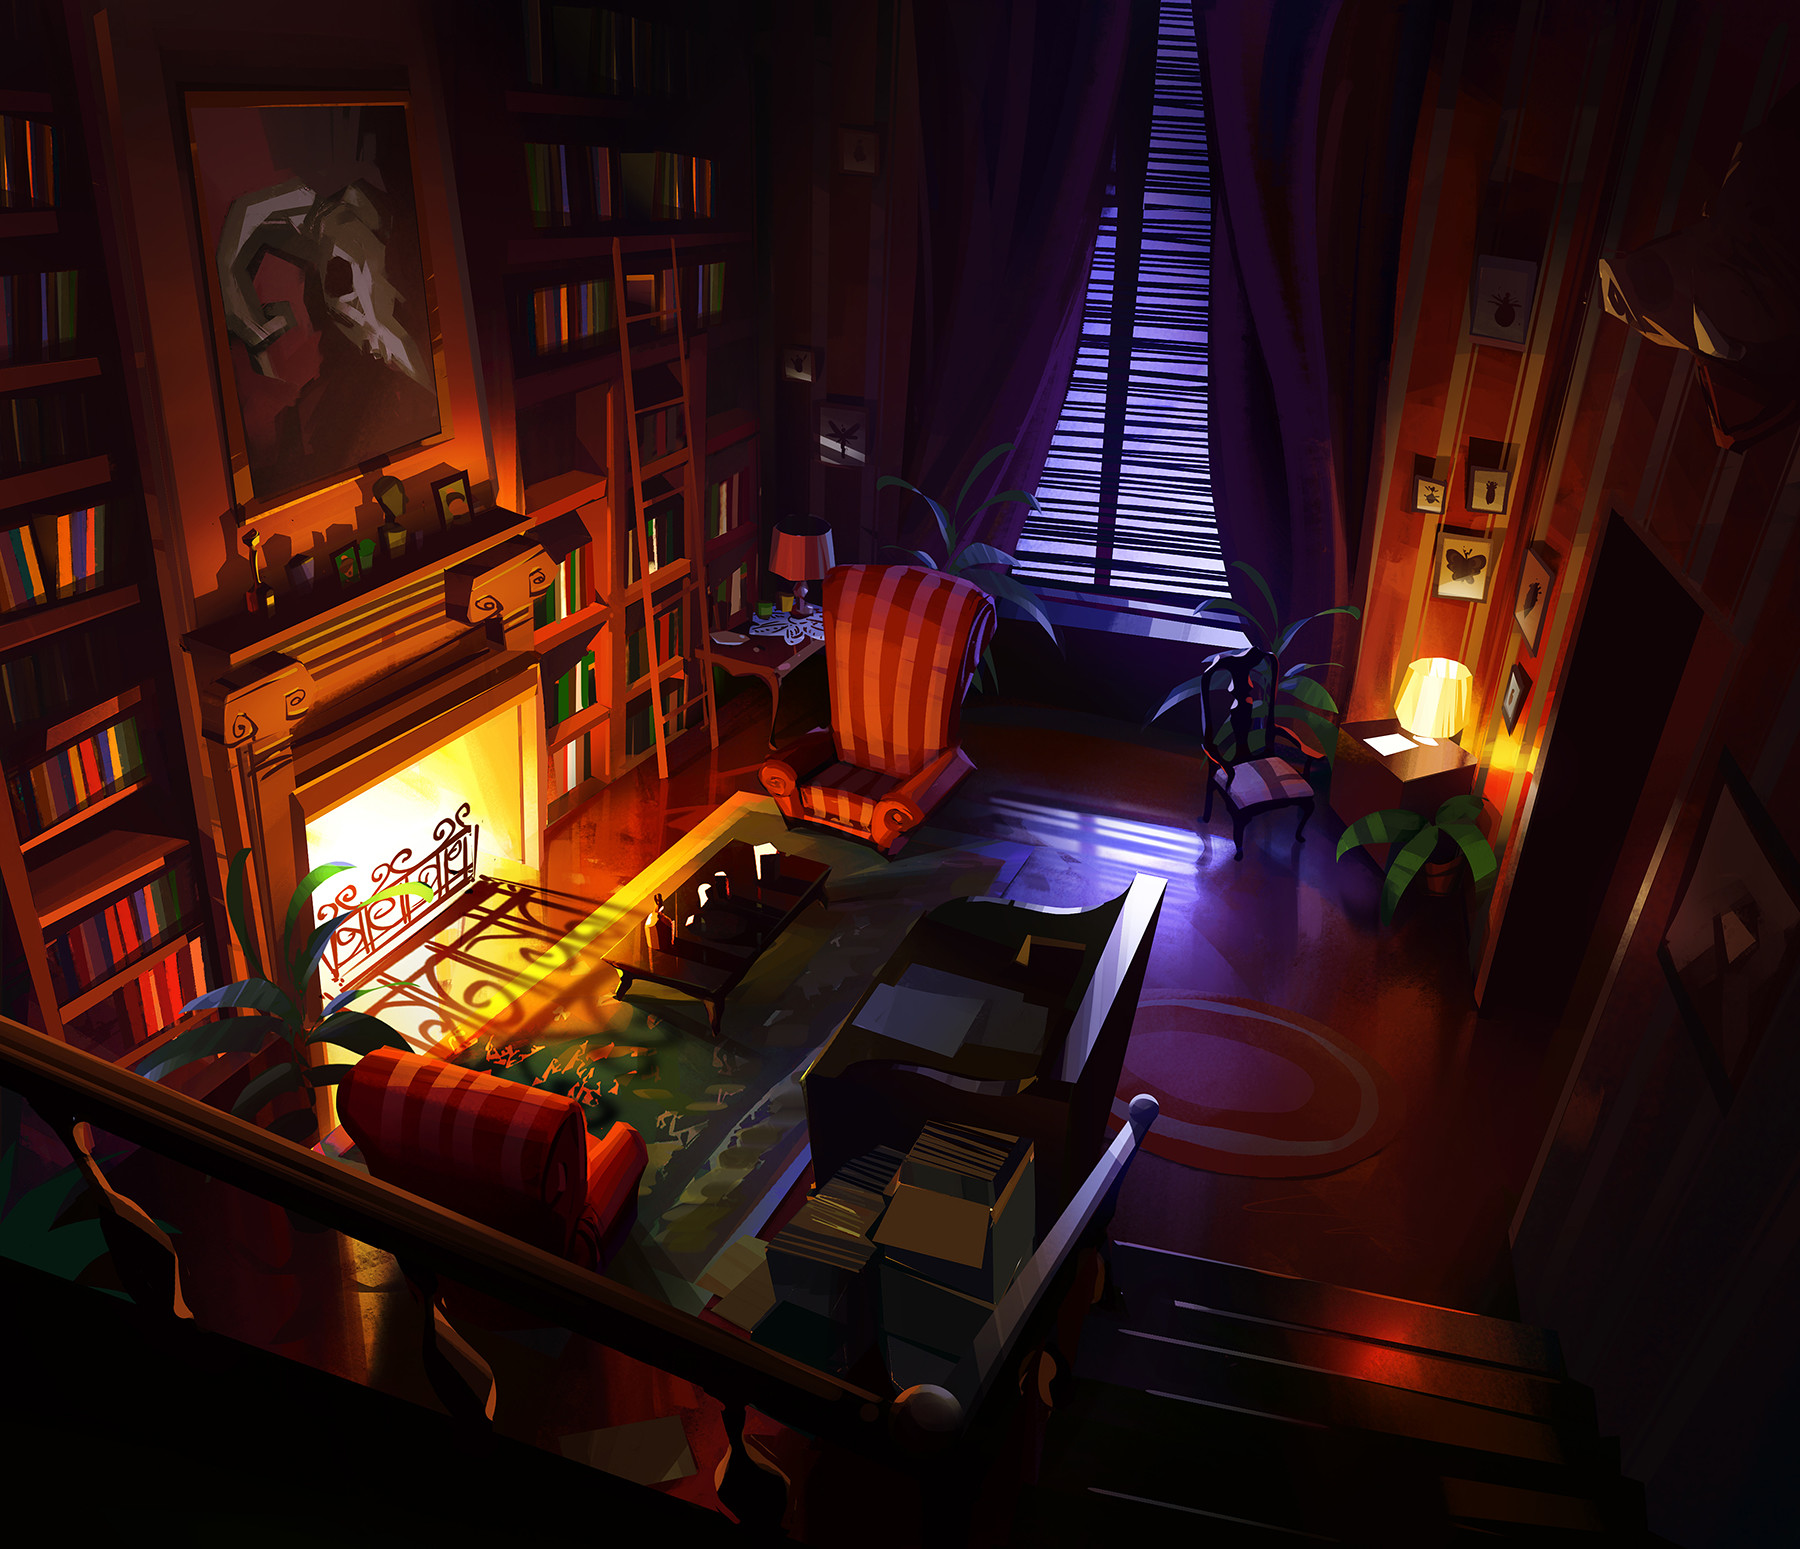 Michal sawtyruk room interior v5